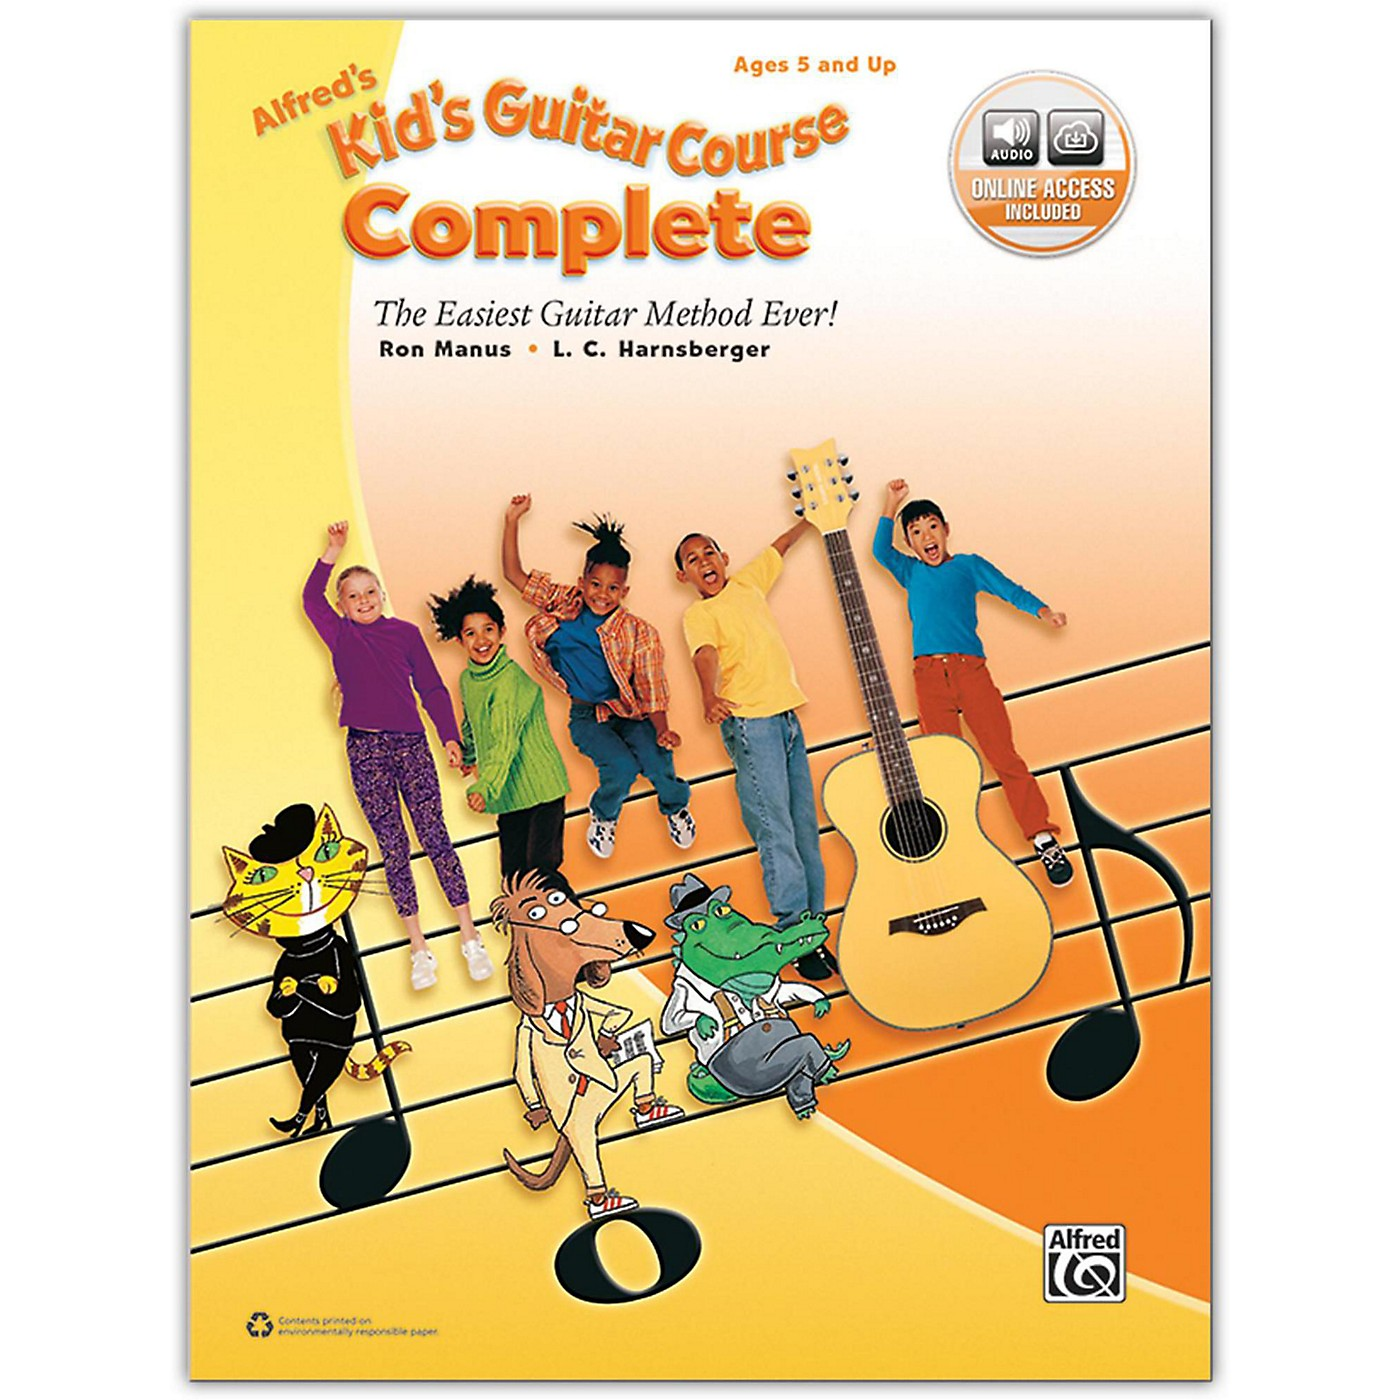 Alfred Alfred's Kid's Guitar Course Complete Book & Online Audio thumbnail